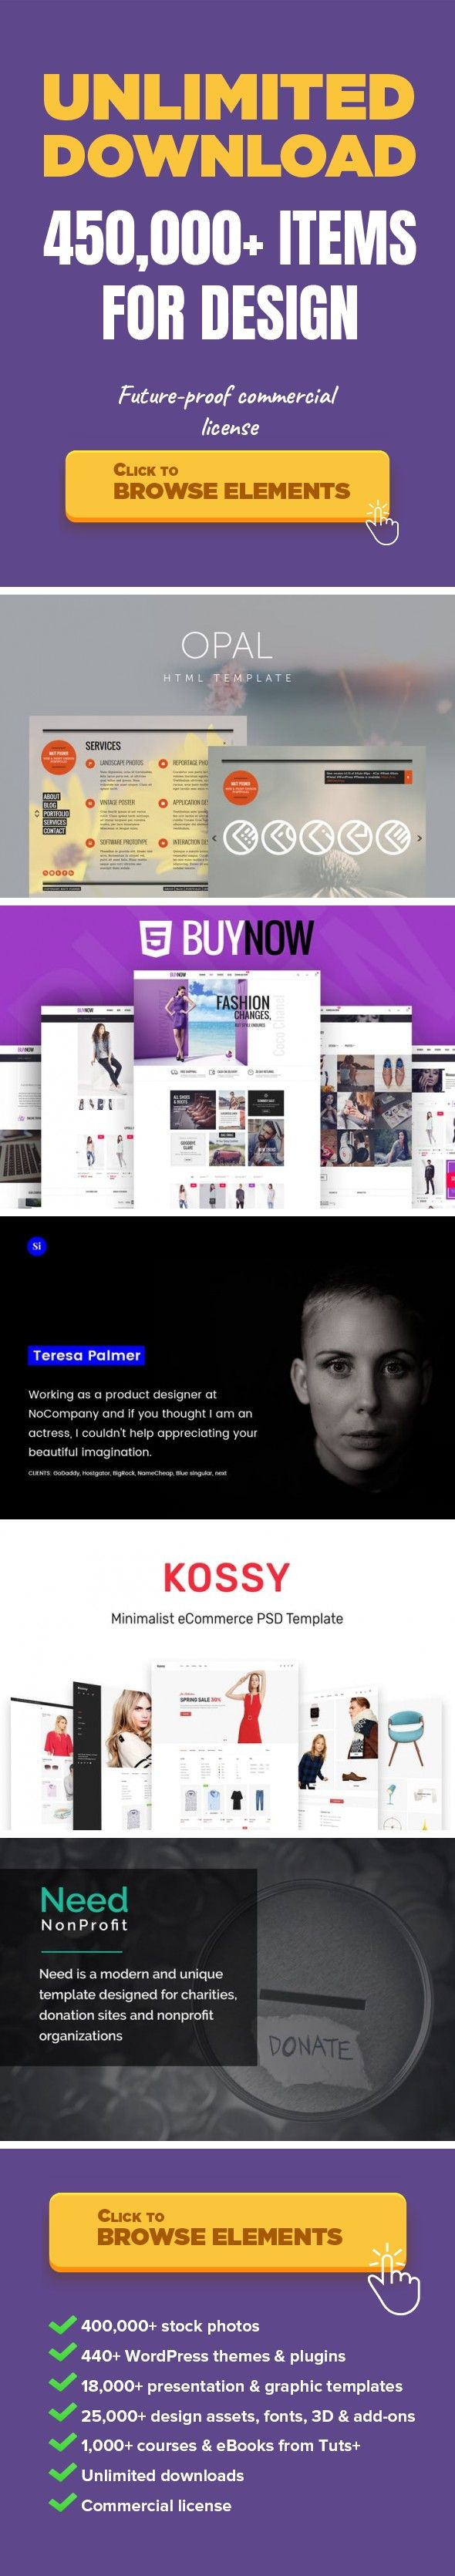 Opal - Minimal Portfolio Template Web Templates, Site Templates circle, clean, creative, minimal, minimalist, minimalistic, modern, portfolio, retro, slideshow, timeline, vintage, fullscreen, photography, floristic   Opal is a personal HTML portfolio Template based on fullscreen slideshow and menu of pictograms. The Template fullscreen background will adapt to any screen resolution.Features List j...